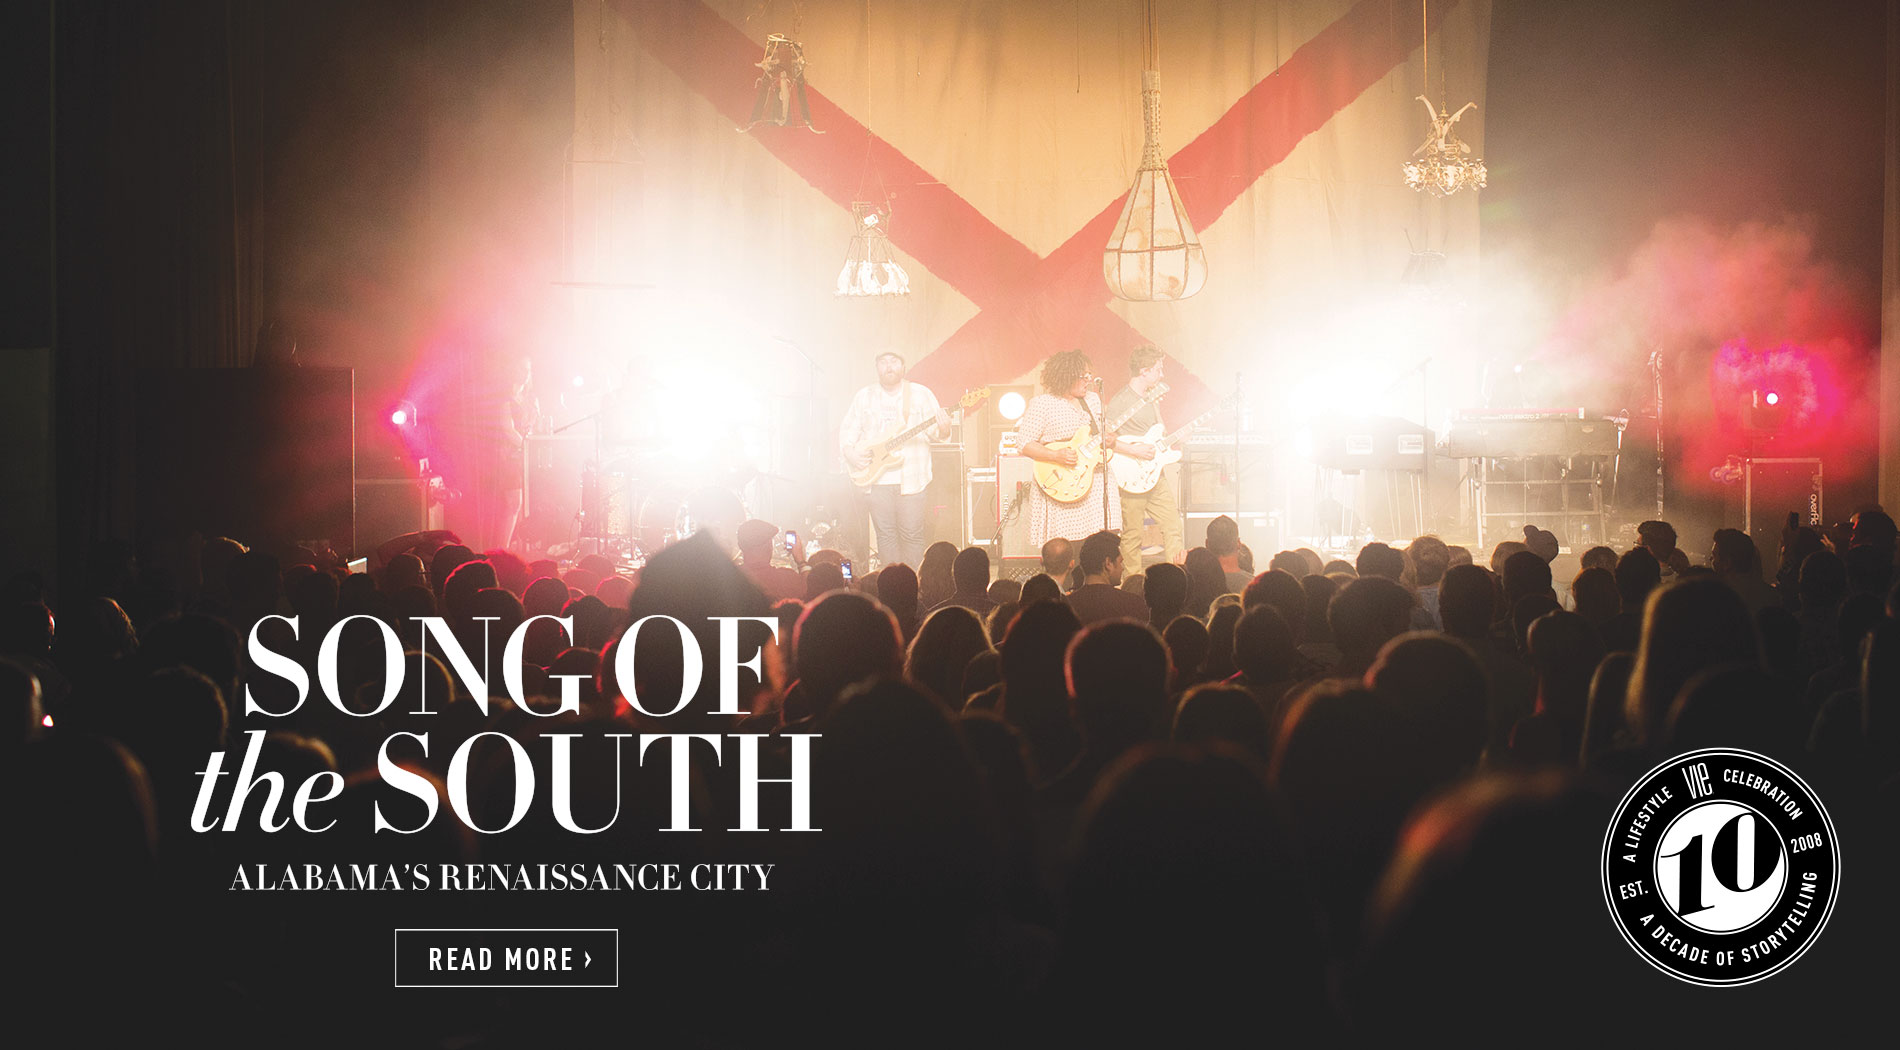 VIE Magazine - The Entertainers Issue - March 2018 - Song of the South - Alabama's Renaissance City